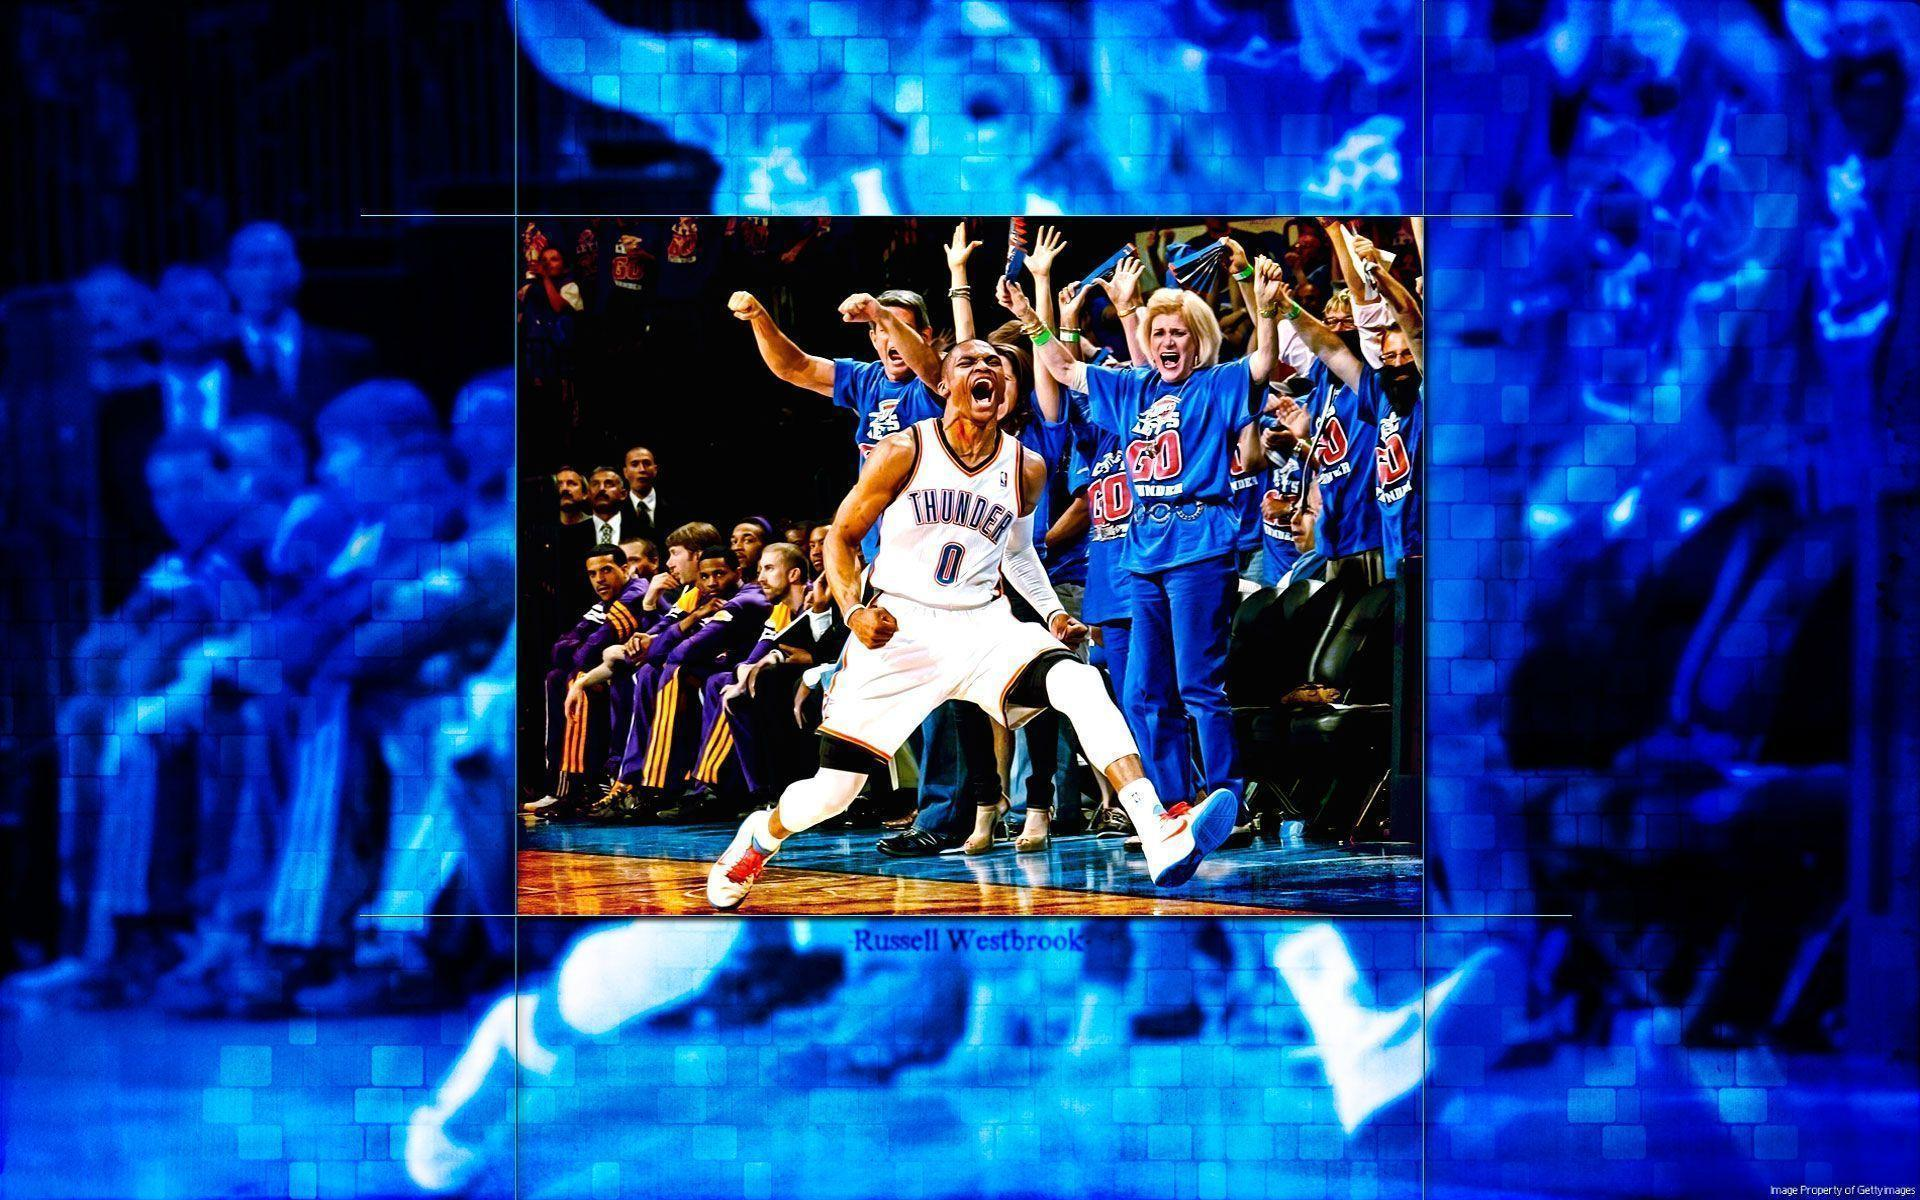 kevin durant and russell westbrook 2015 wallpapers